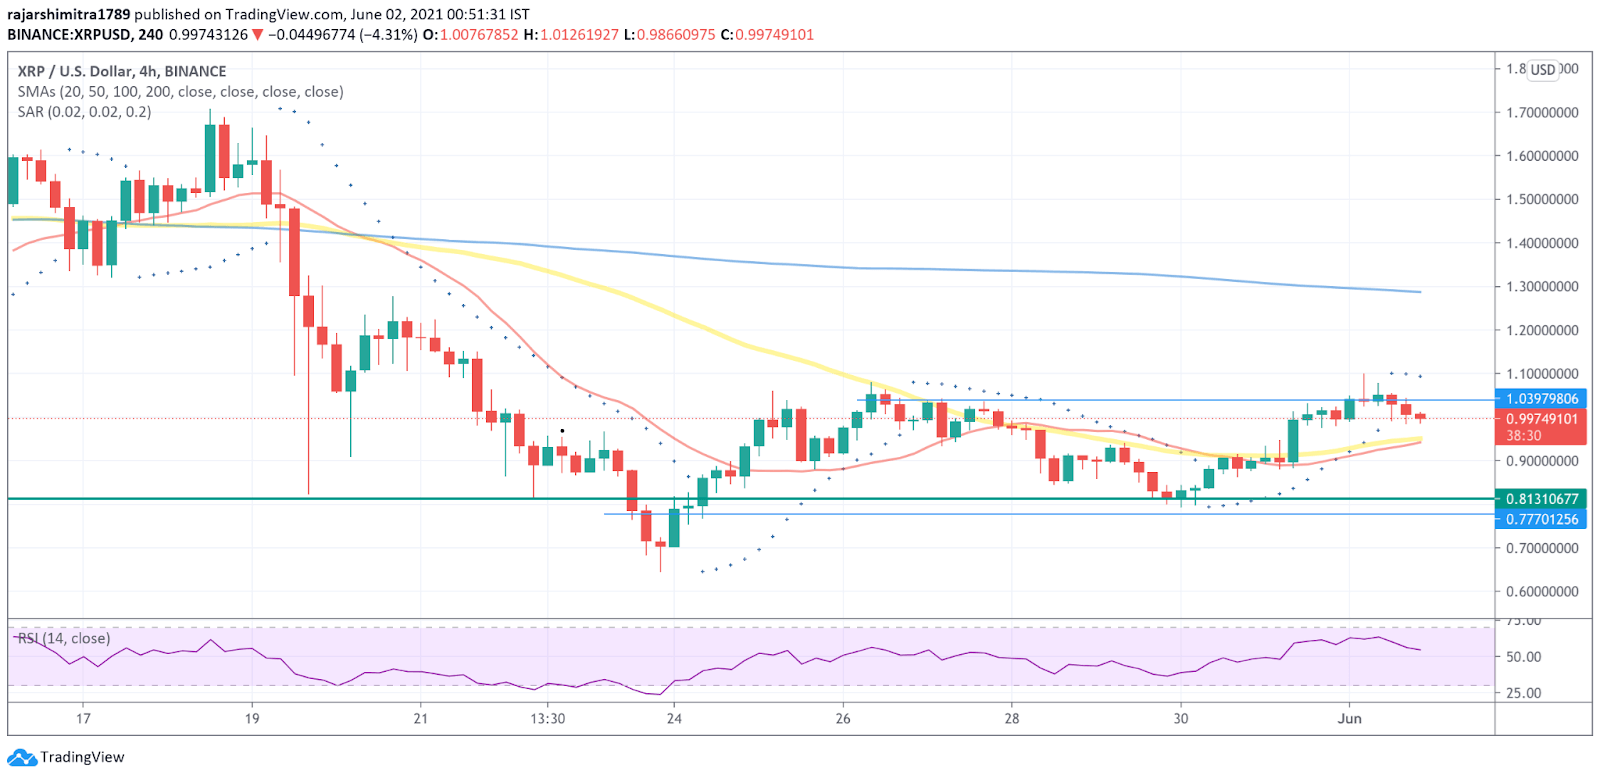 XRP/USD 4-hour chart 060221